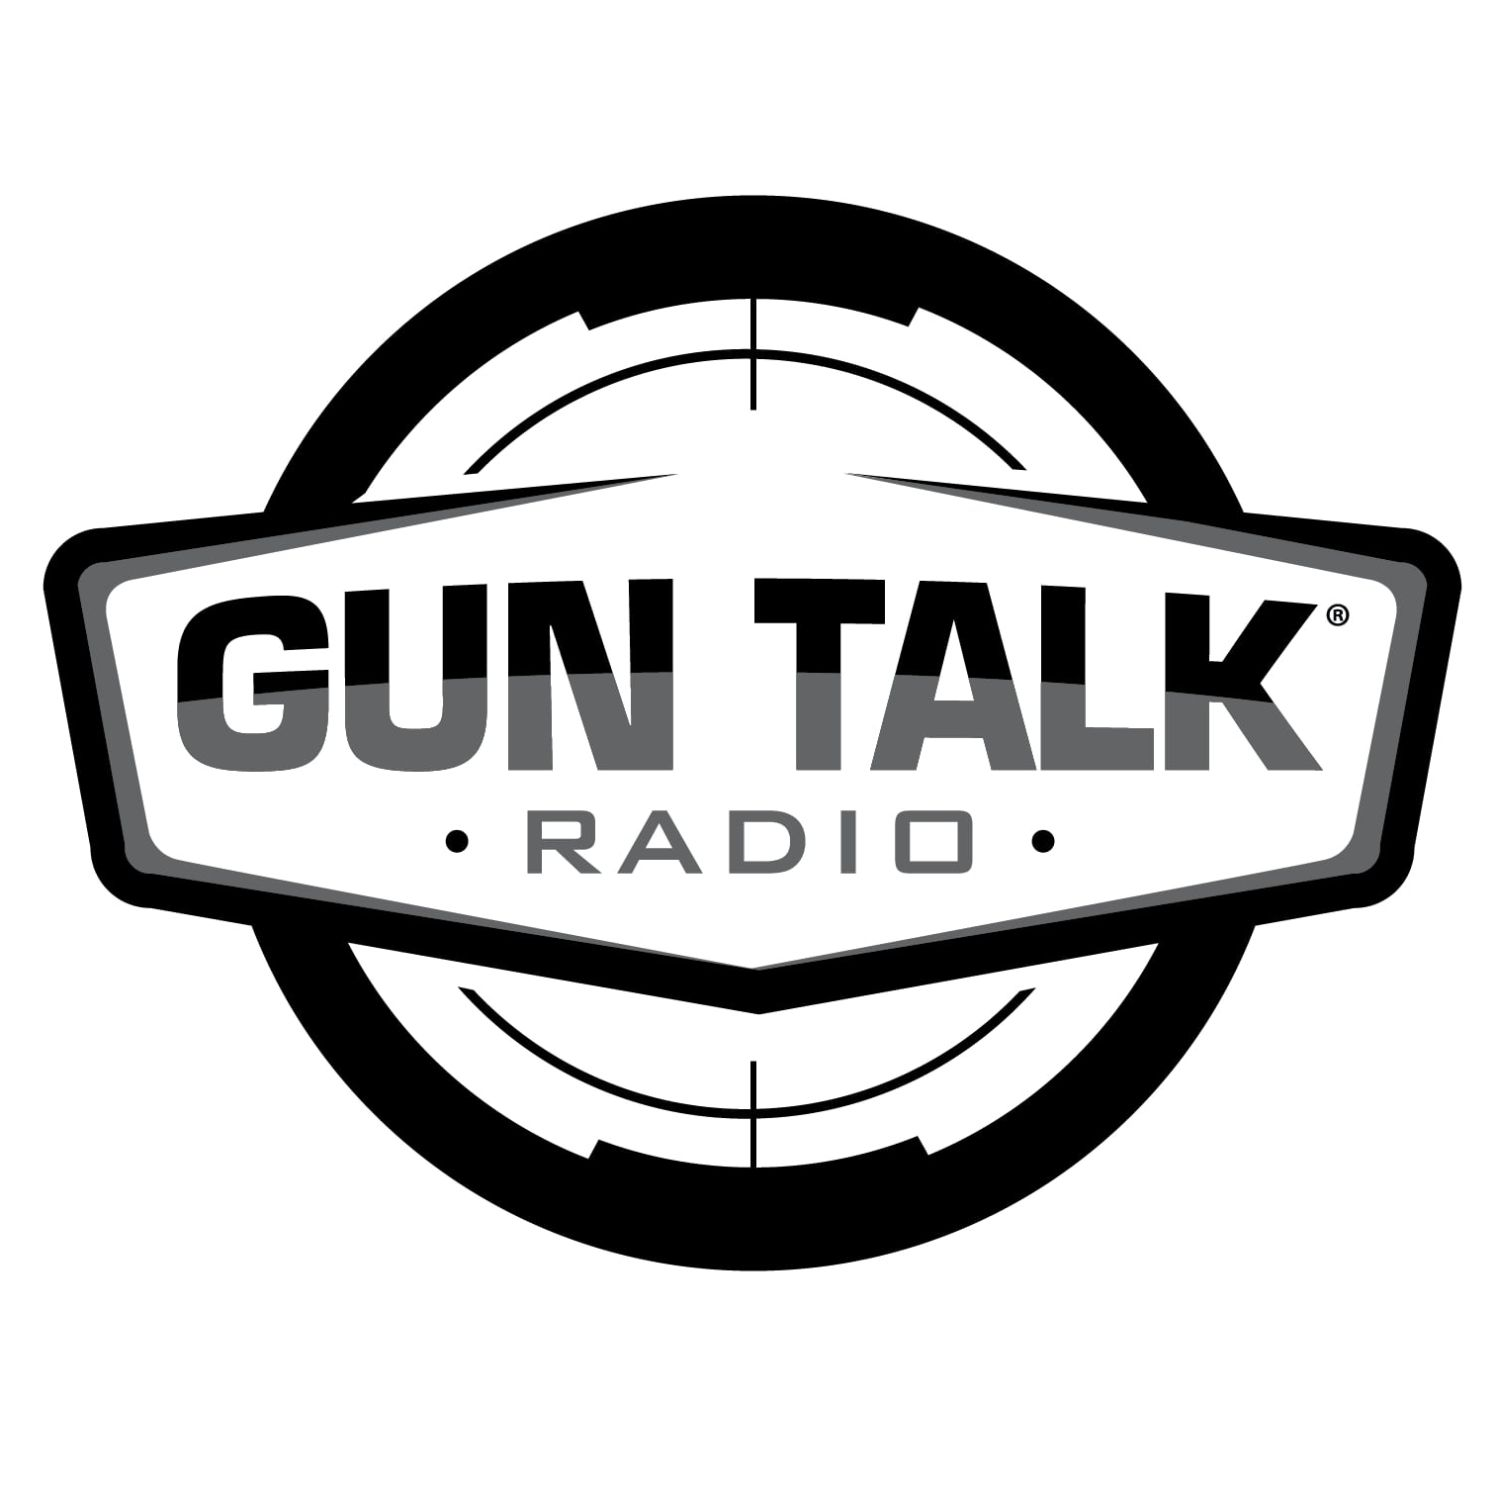 Artwork for Guntalk 2006-05-28 Part B